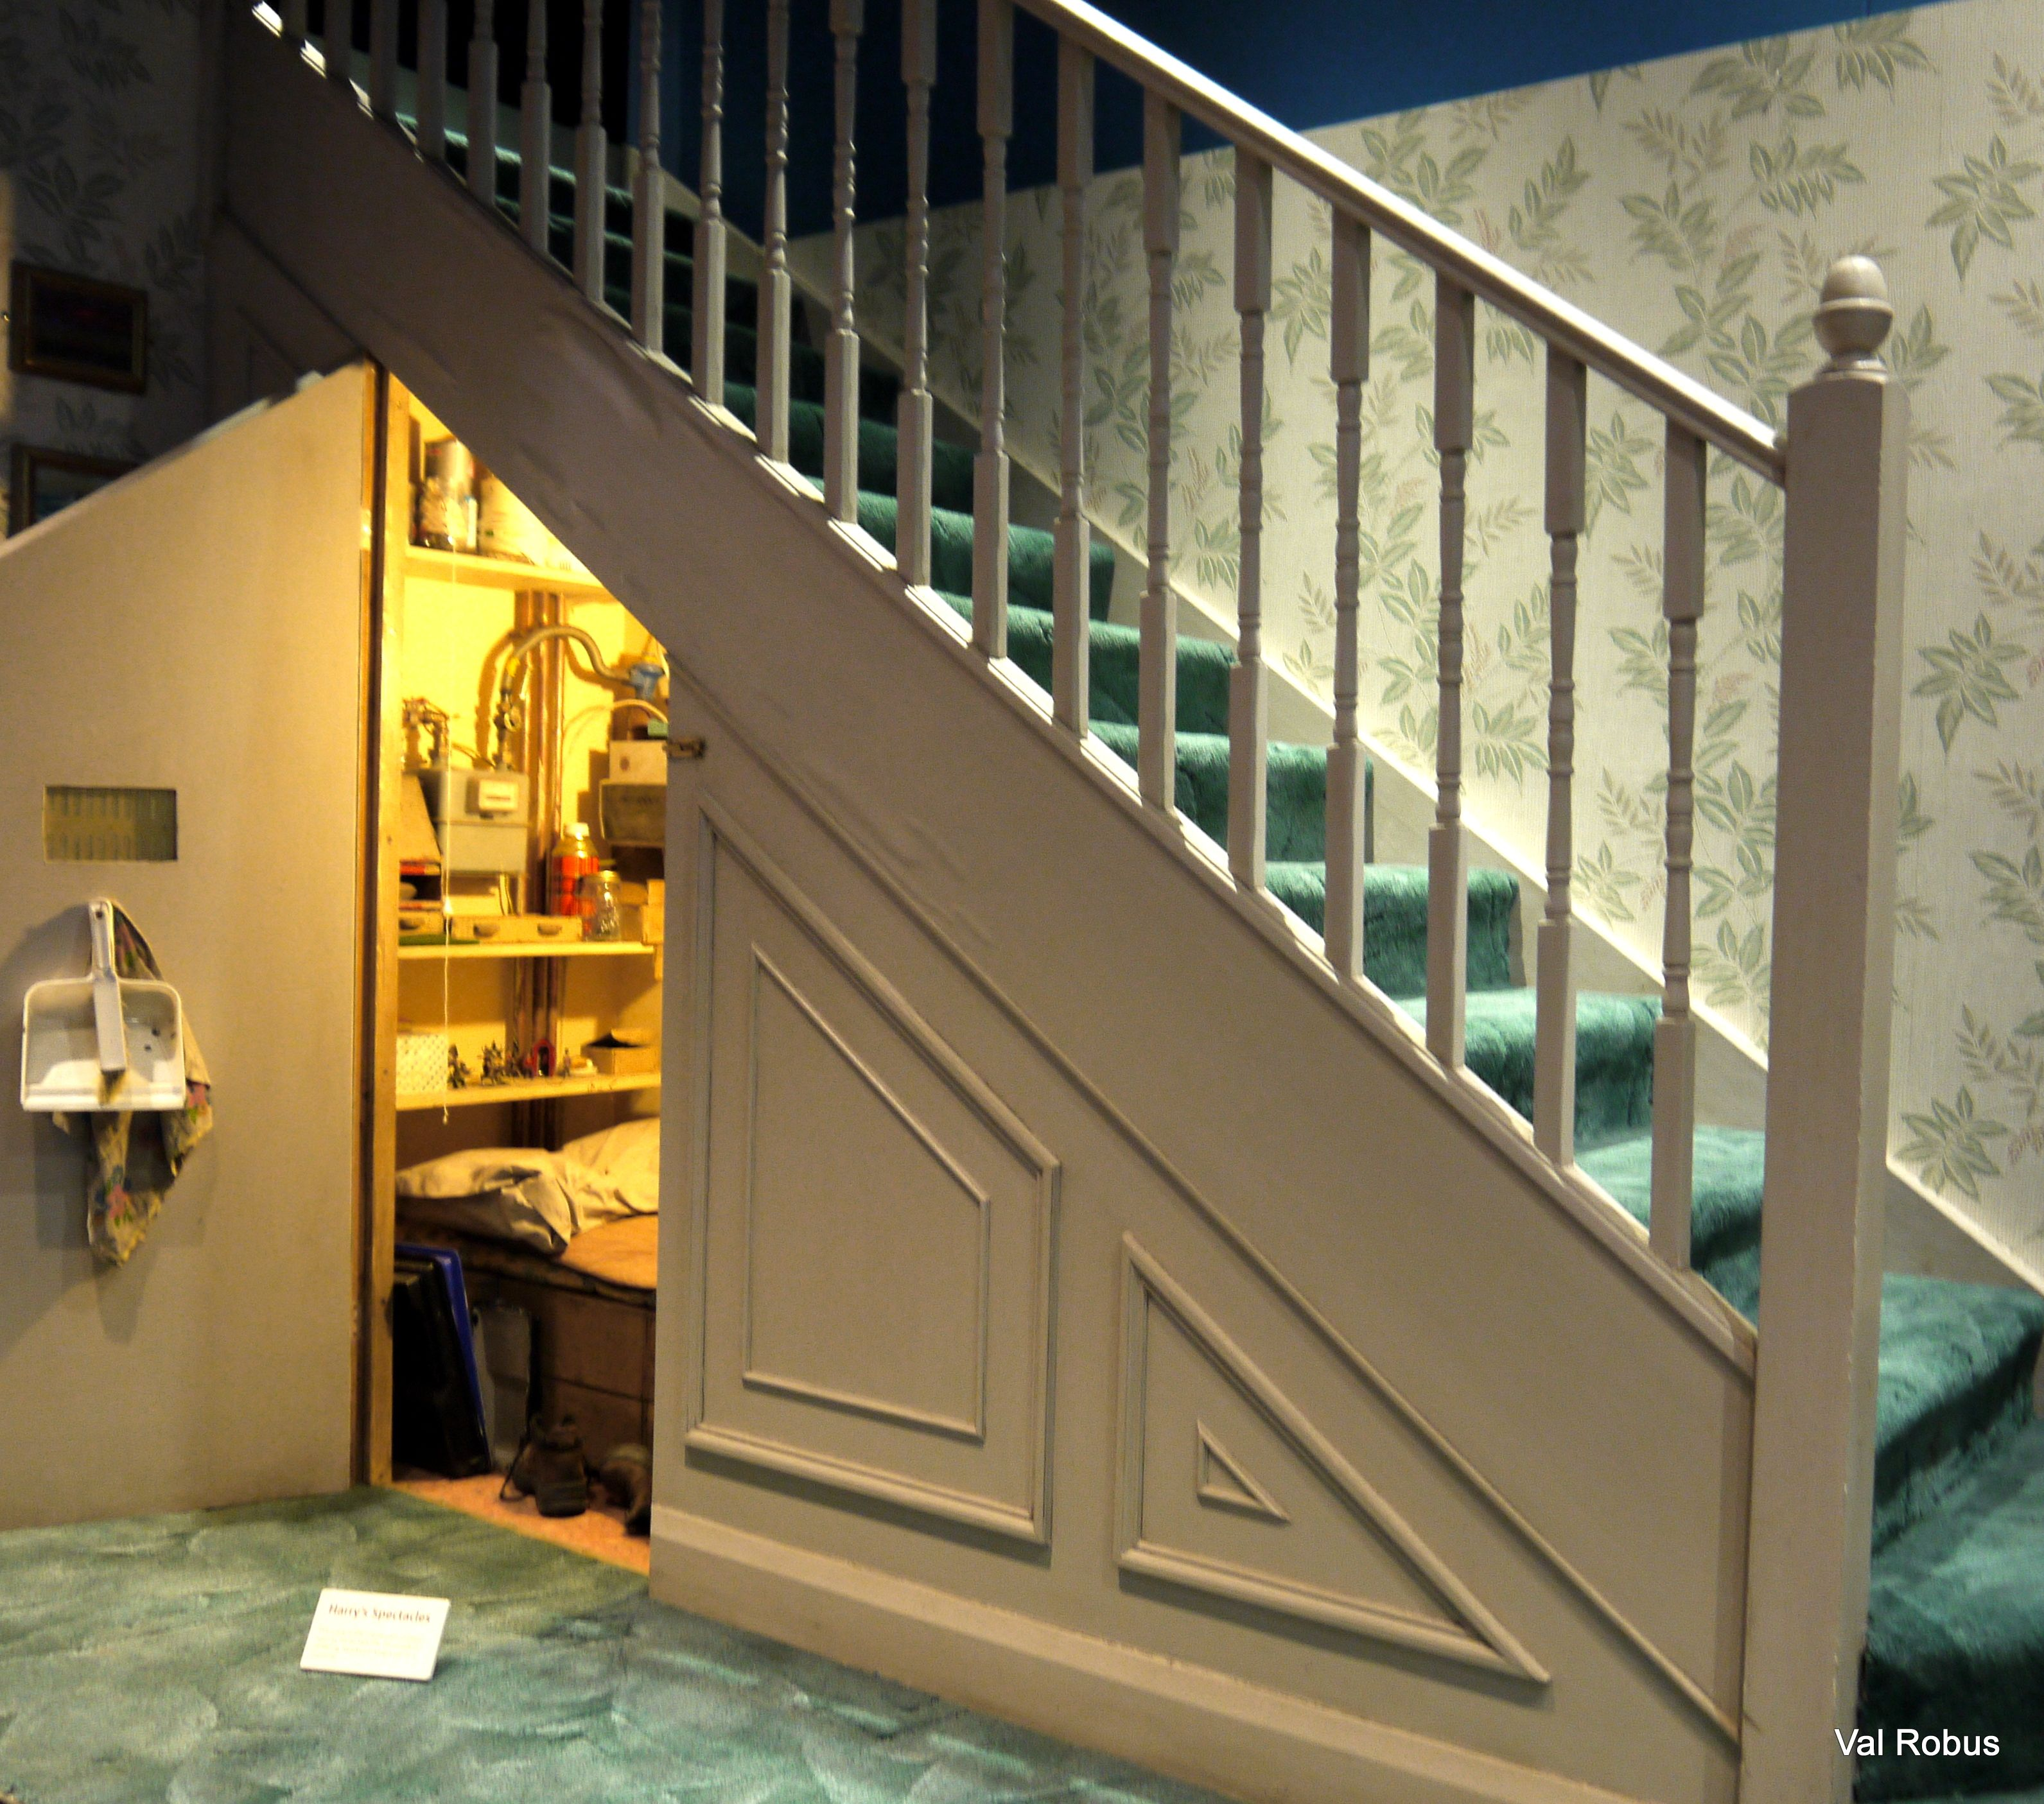 Harry Potter Cupboard Under The Stairs Under Stairs Cupboard Under Stairs Understairs Storage